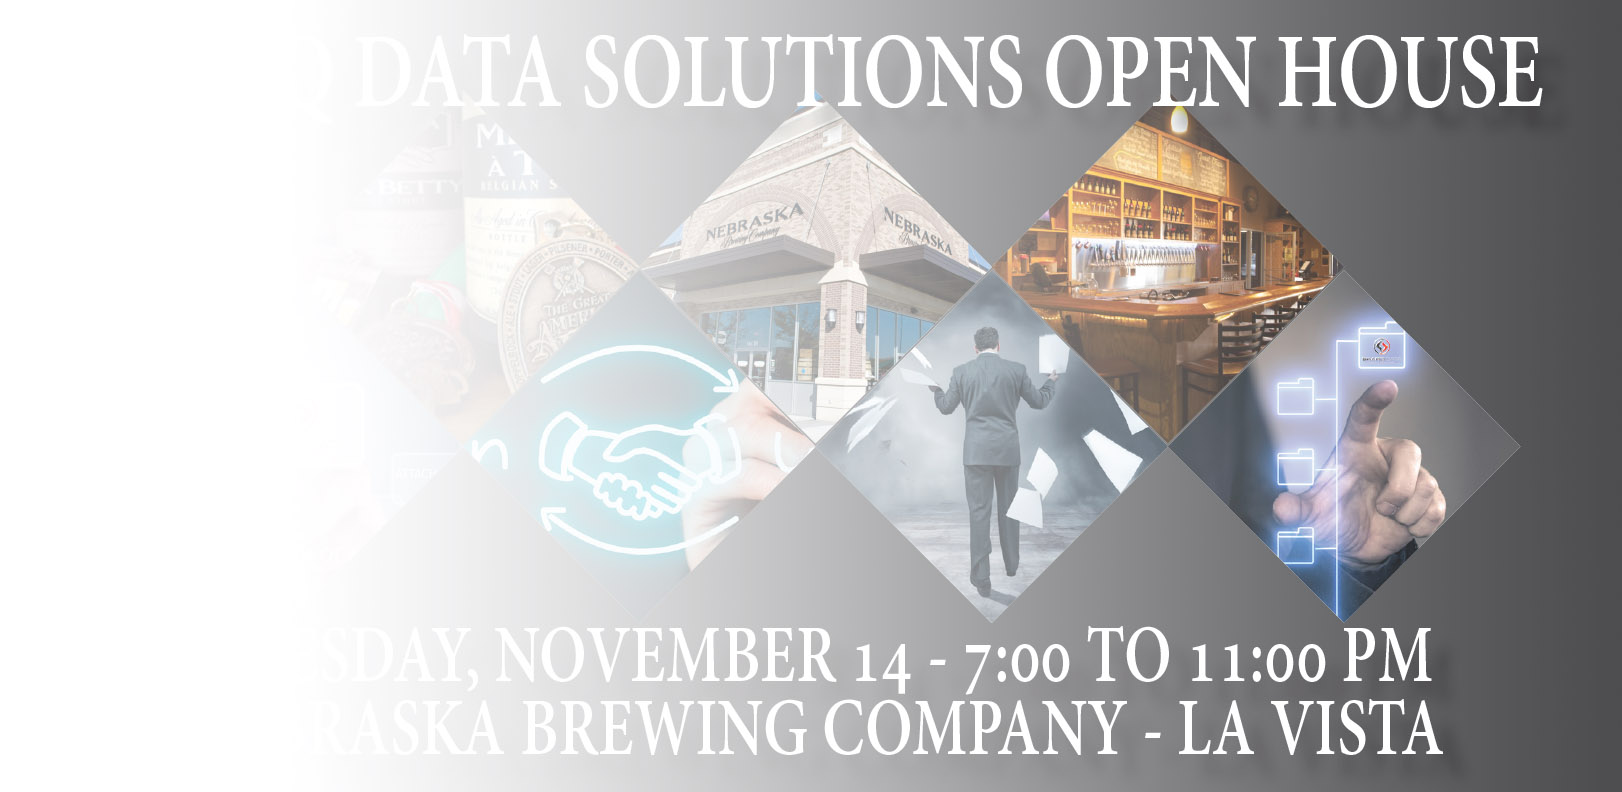 Sparq Data Solutions Open House